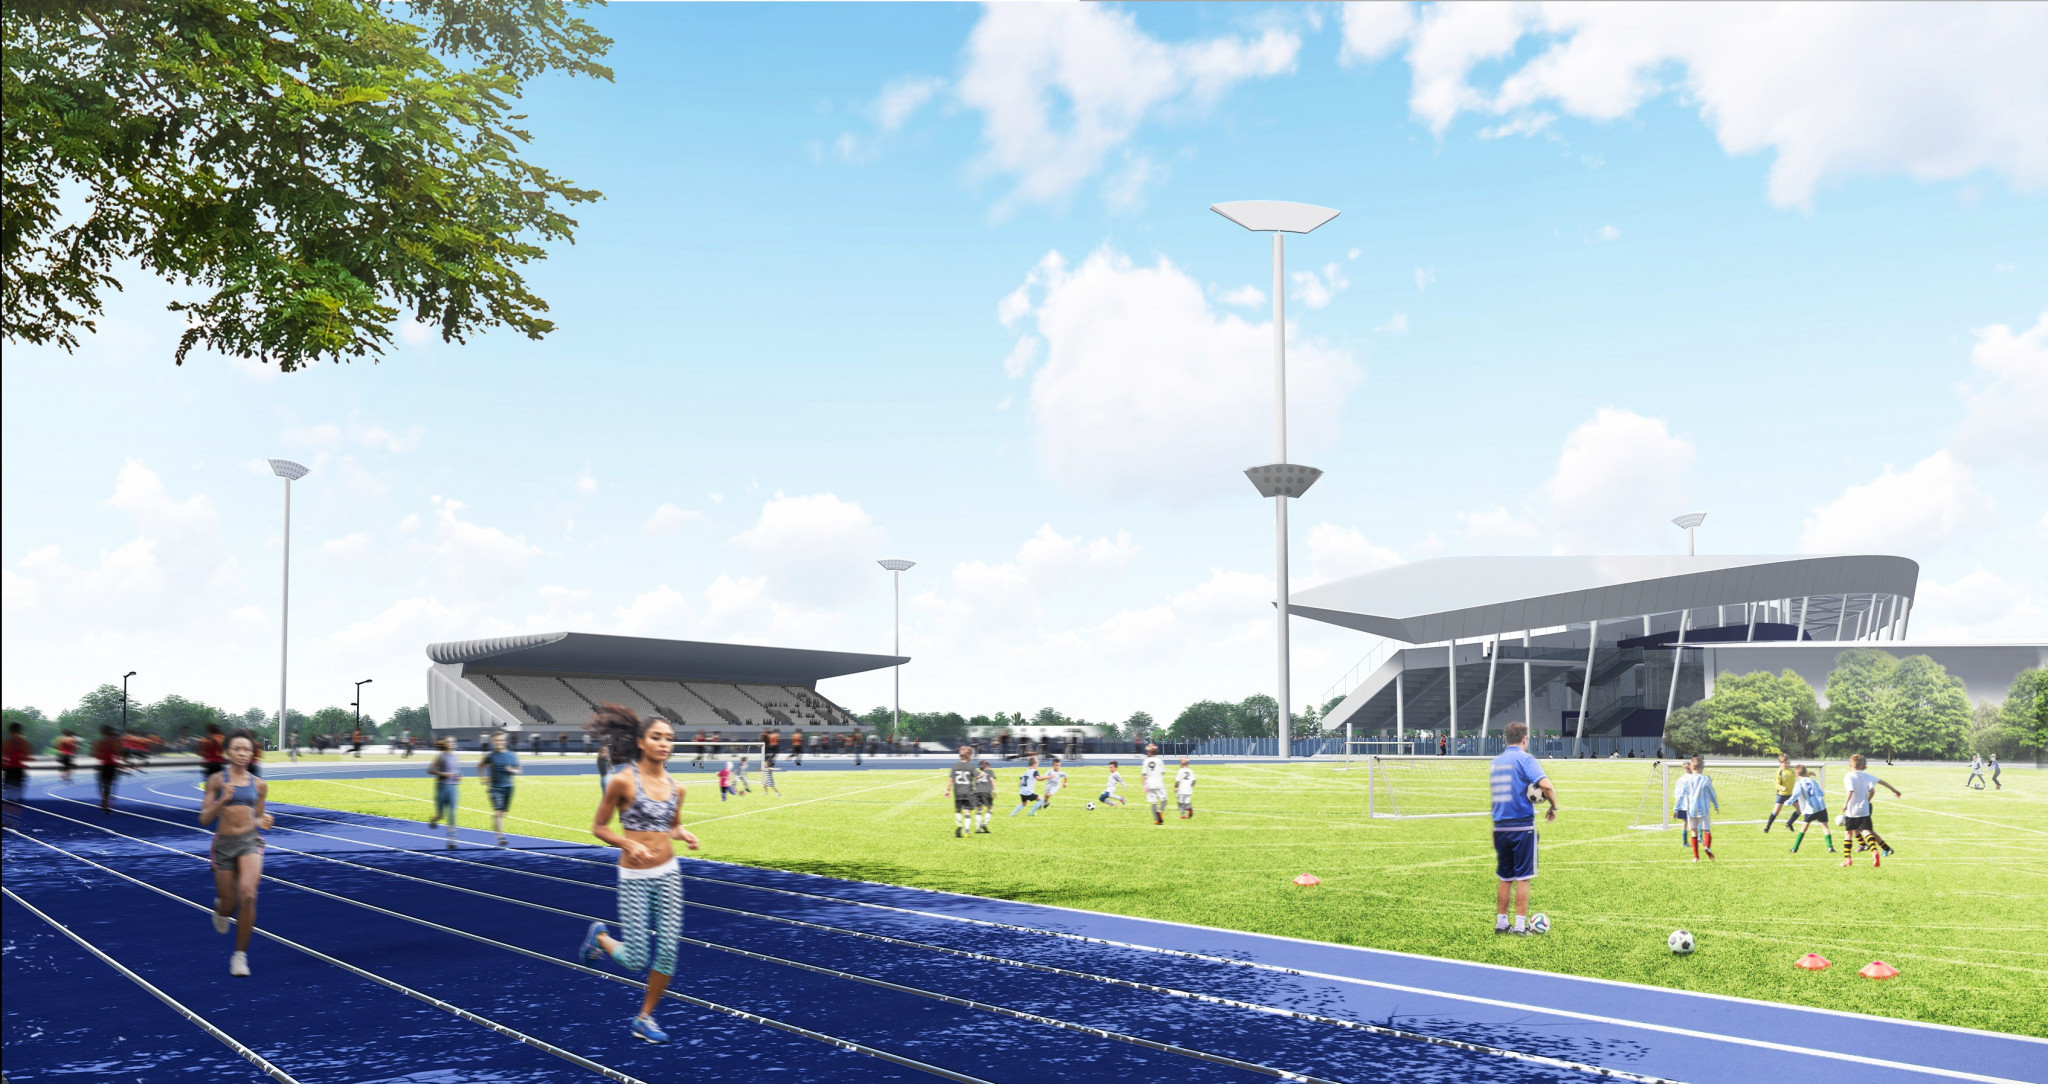 It is hoped the Alexander Stadium will become a high-quality venue for diverse sporting, leisure, community and cultural events in the decades to come ©Birmingham City Council